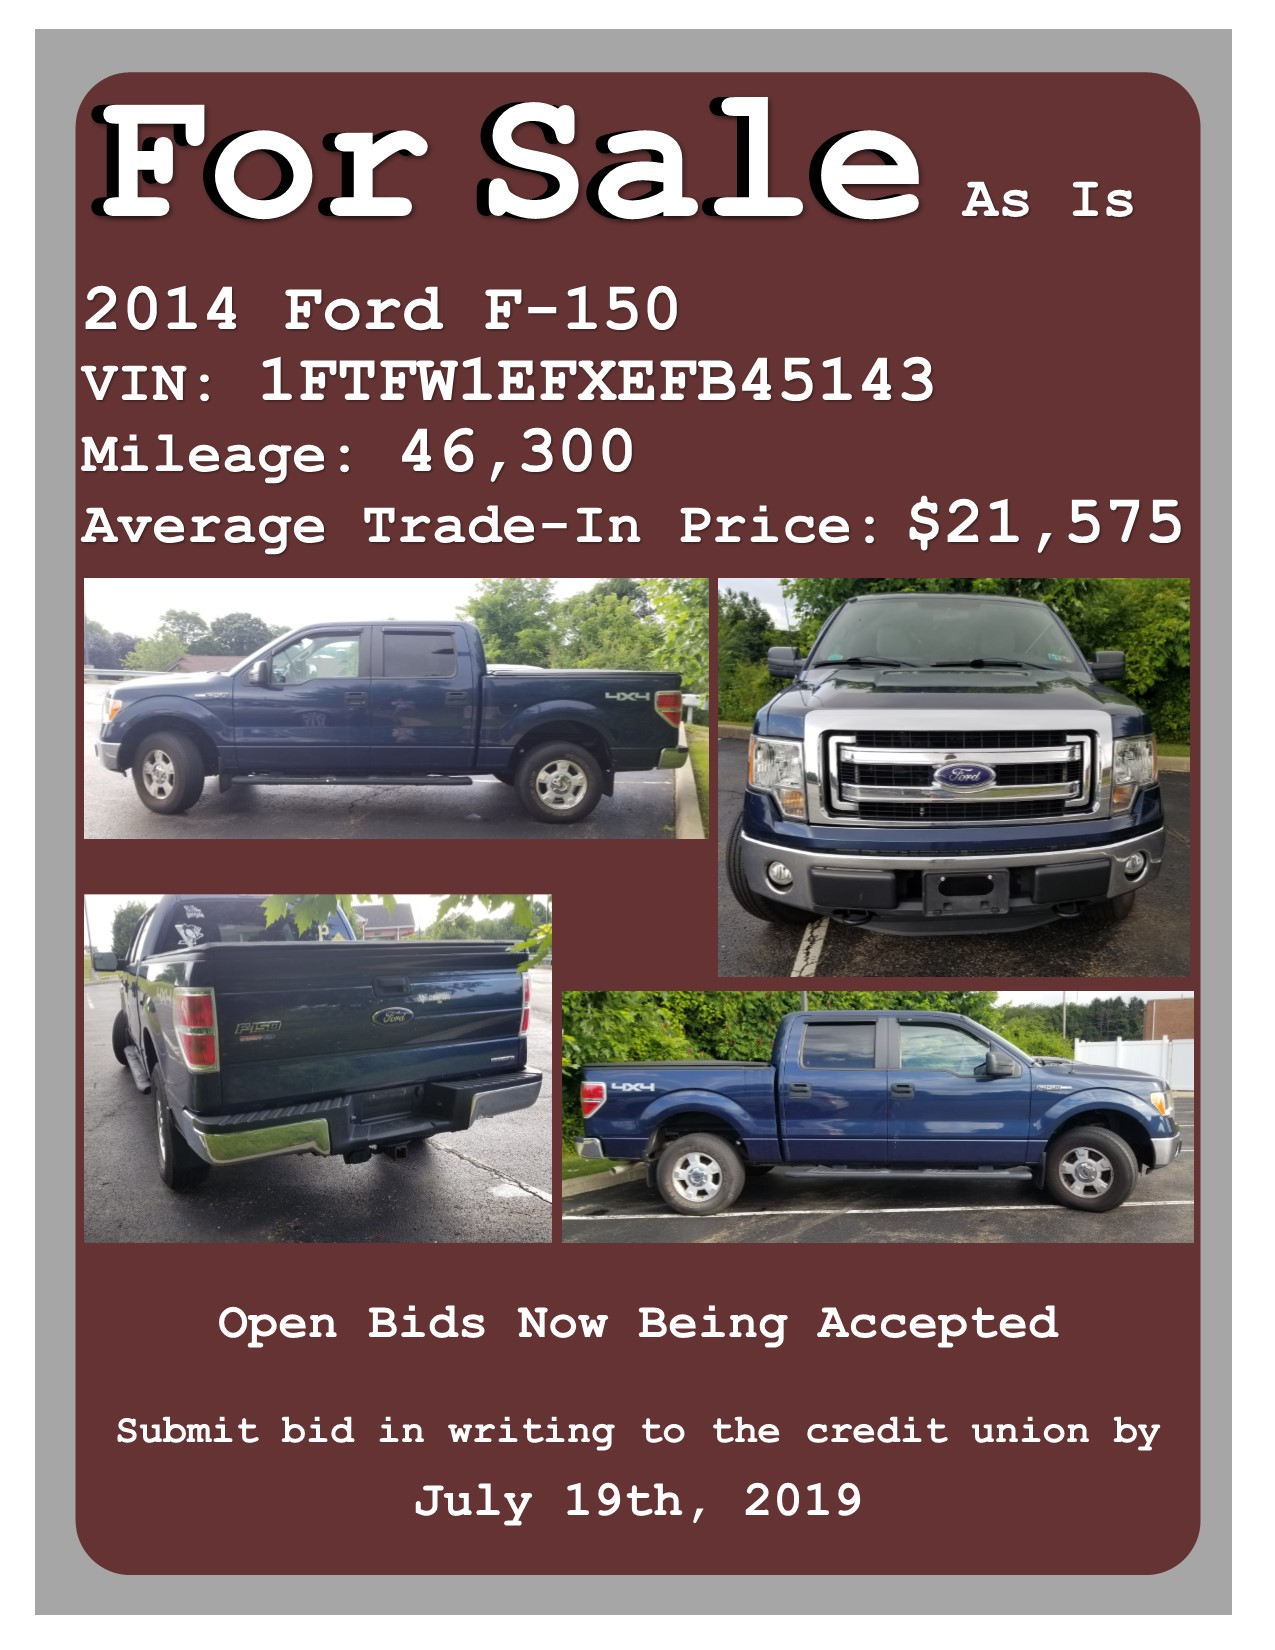 2014-Ford-F-150-2014-Ford-F-150-VIN:1FTFW1EFXEFB45143-Mileage:-46,300-Average-Trade-In-Price:-$21,575-Submit-bid-in-writing-to-the-credit-unionby-July-19th,-2019-For-Sale-As-Is